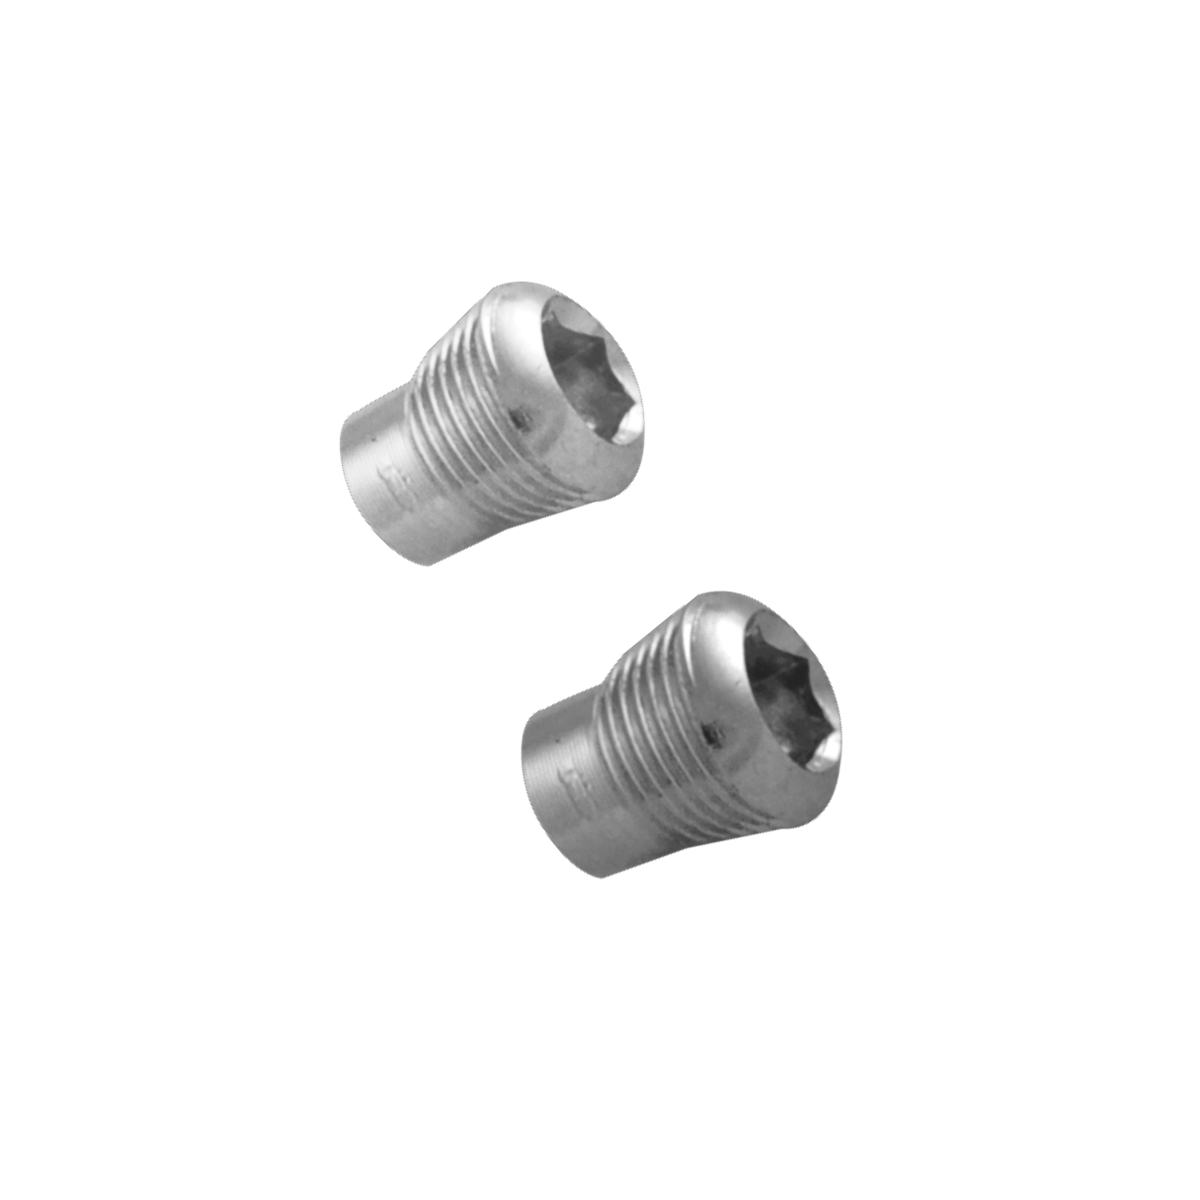 Spacer For 5.0mm Locking Head Screw